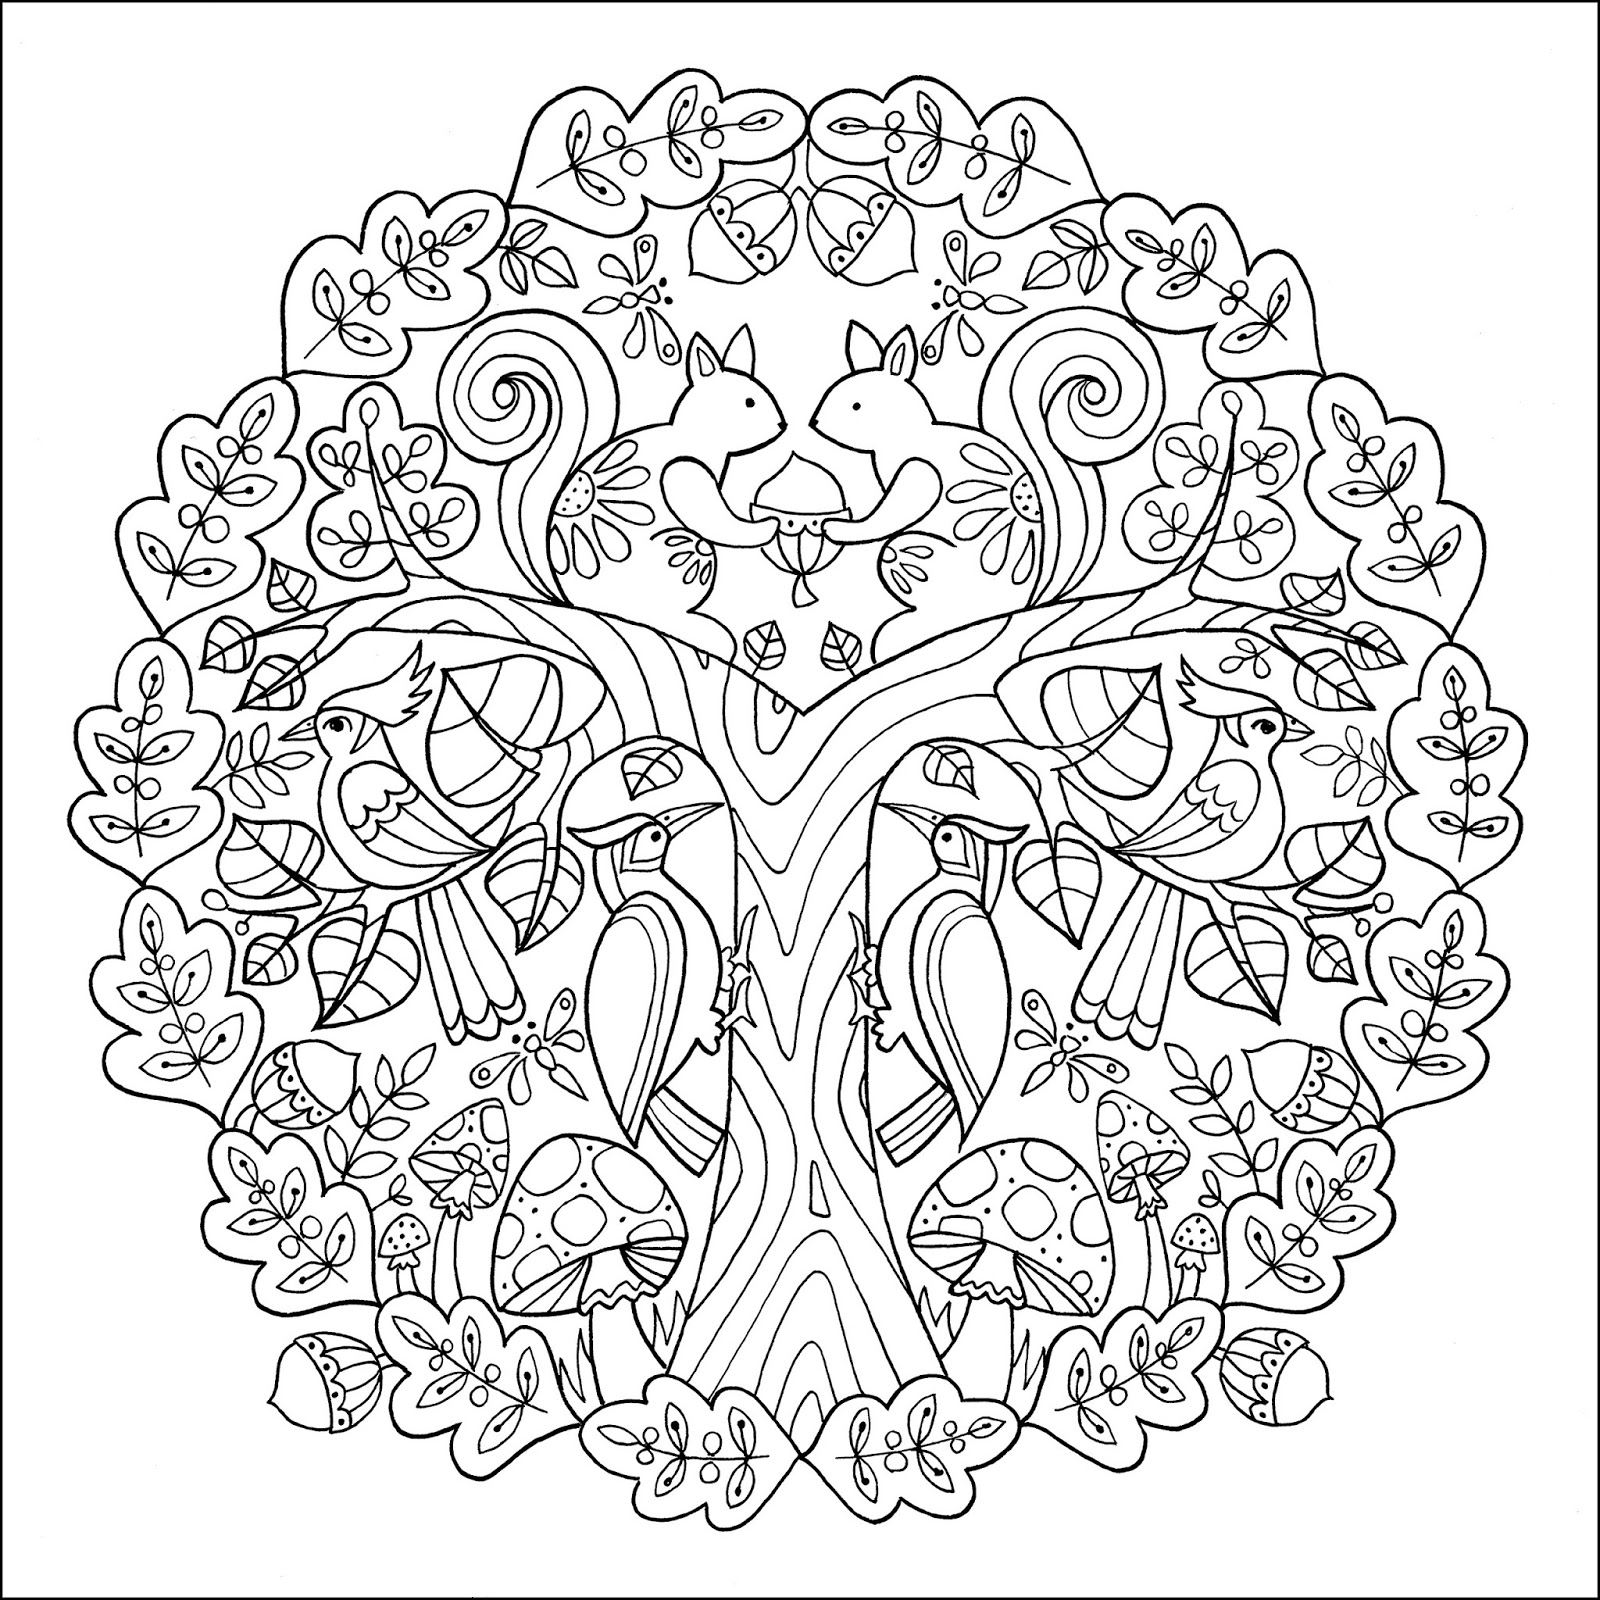 Lighthouse-Academy: Wonders of Creation Coloring Book